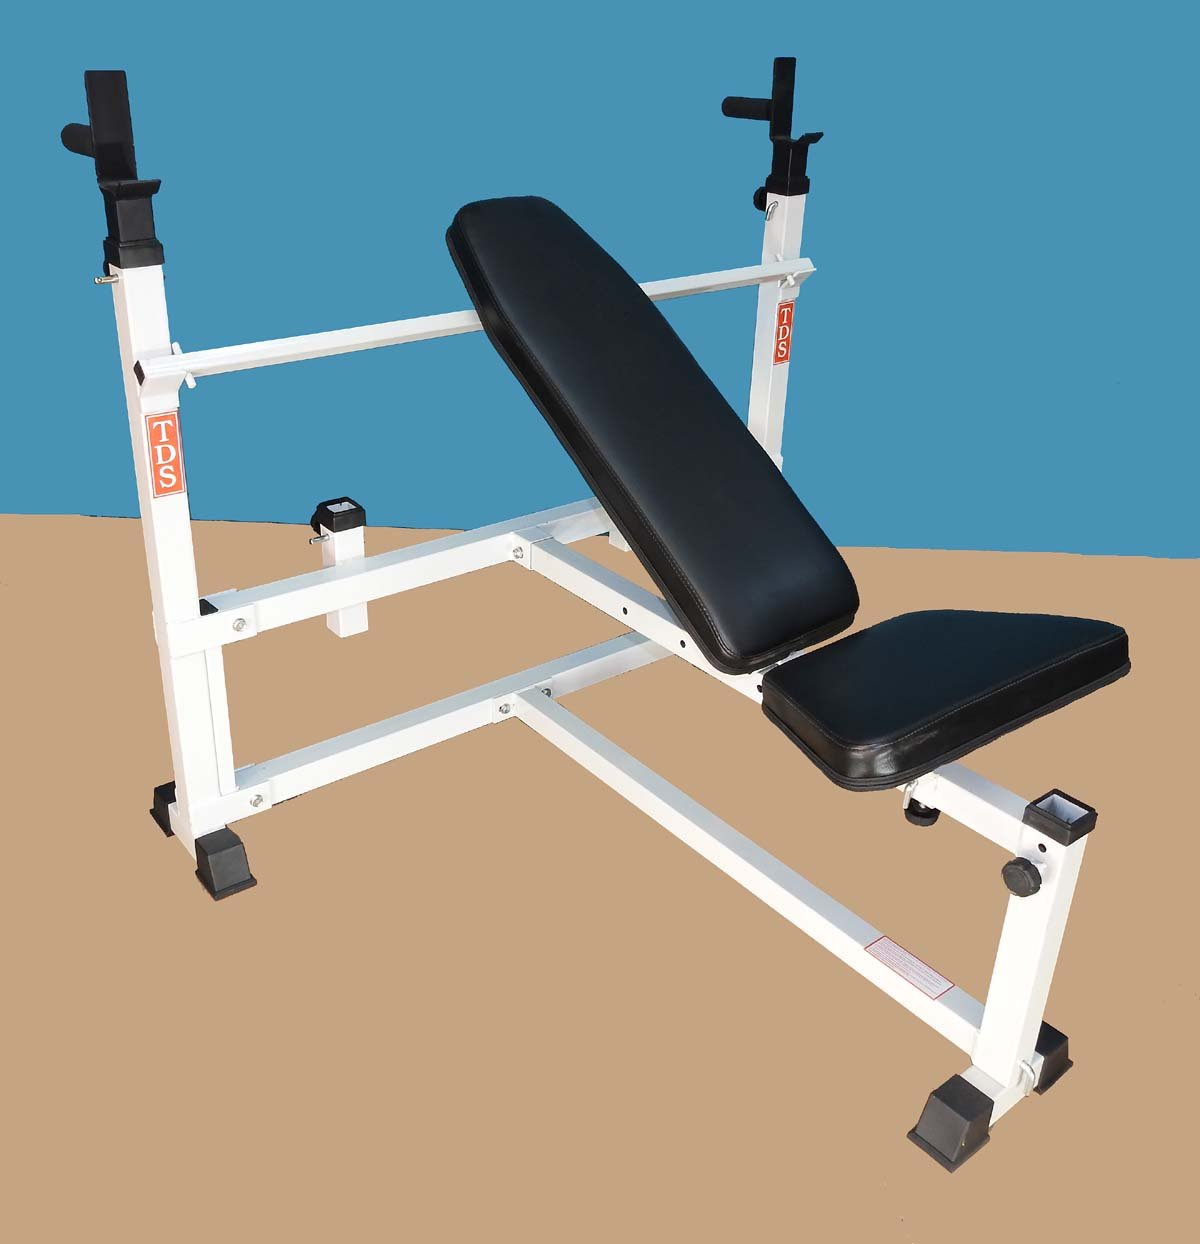 Mega Flat/Incline Adjustable Olympic Super Bench 1000 lb. rated with Deluxe Thick Upholstery. Weighs 98lbs.